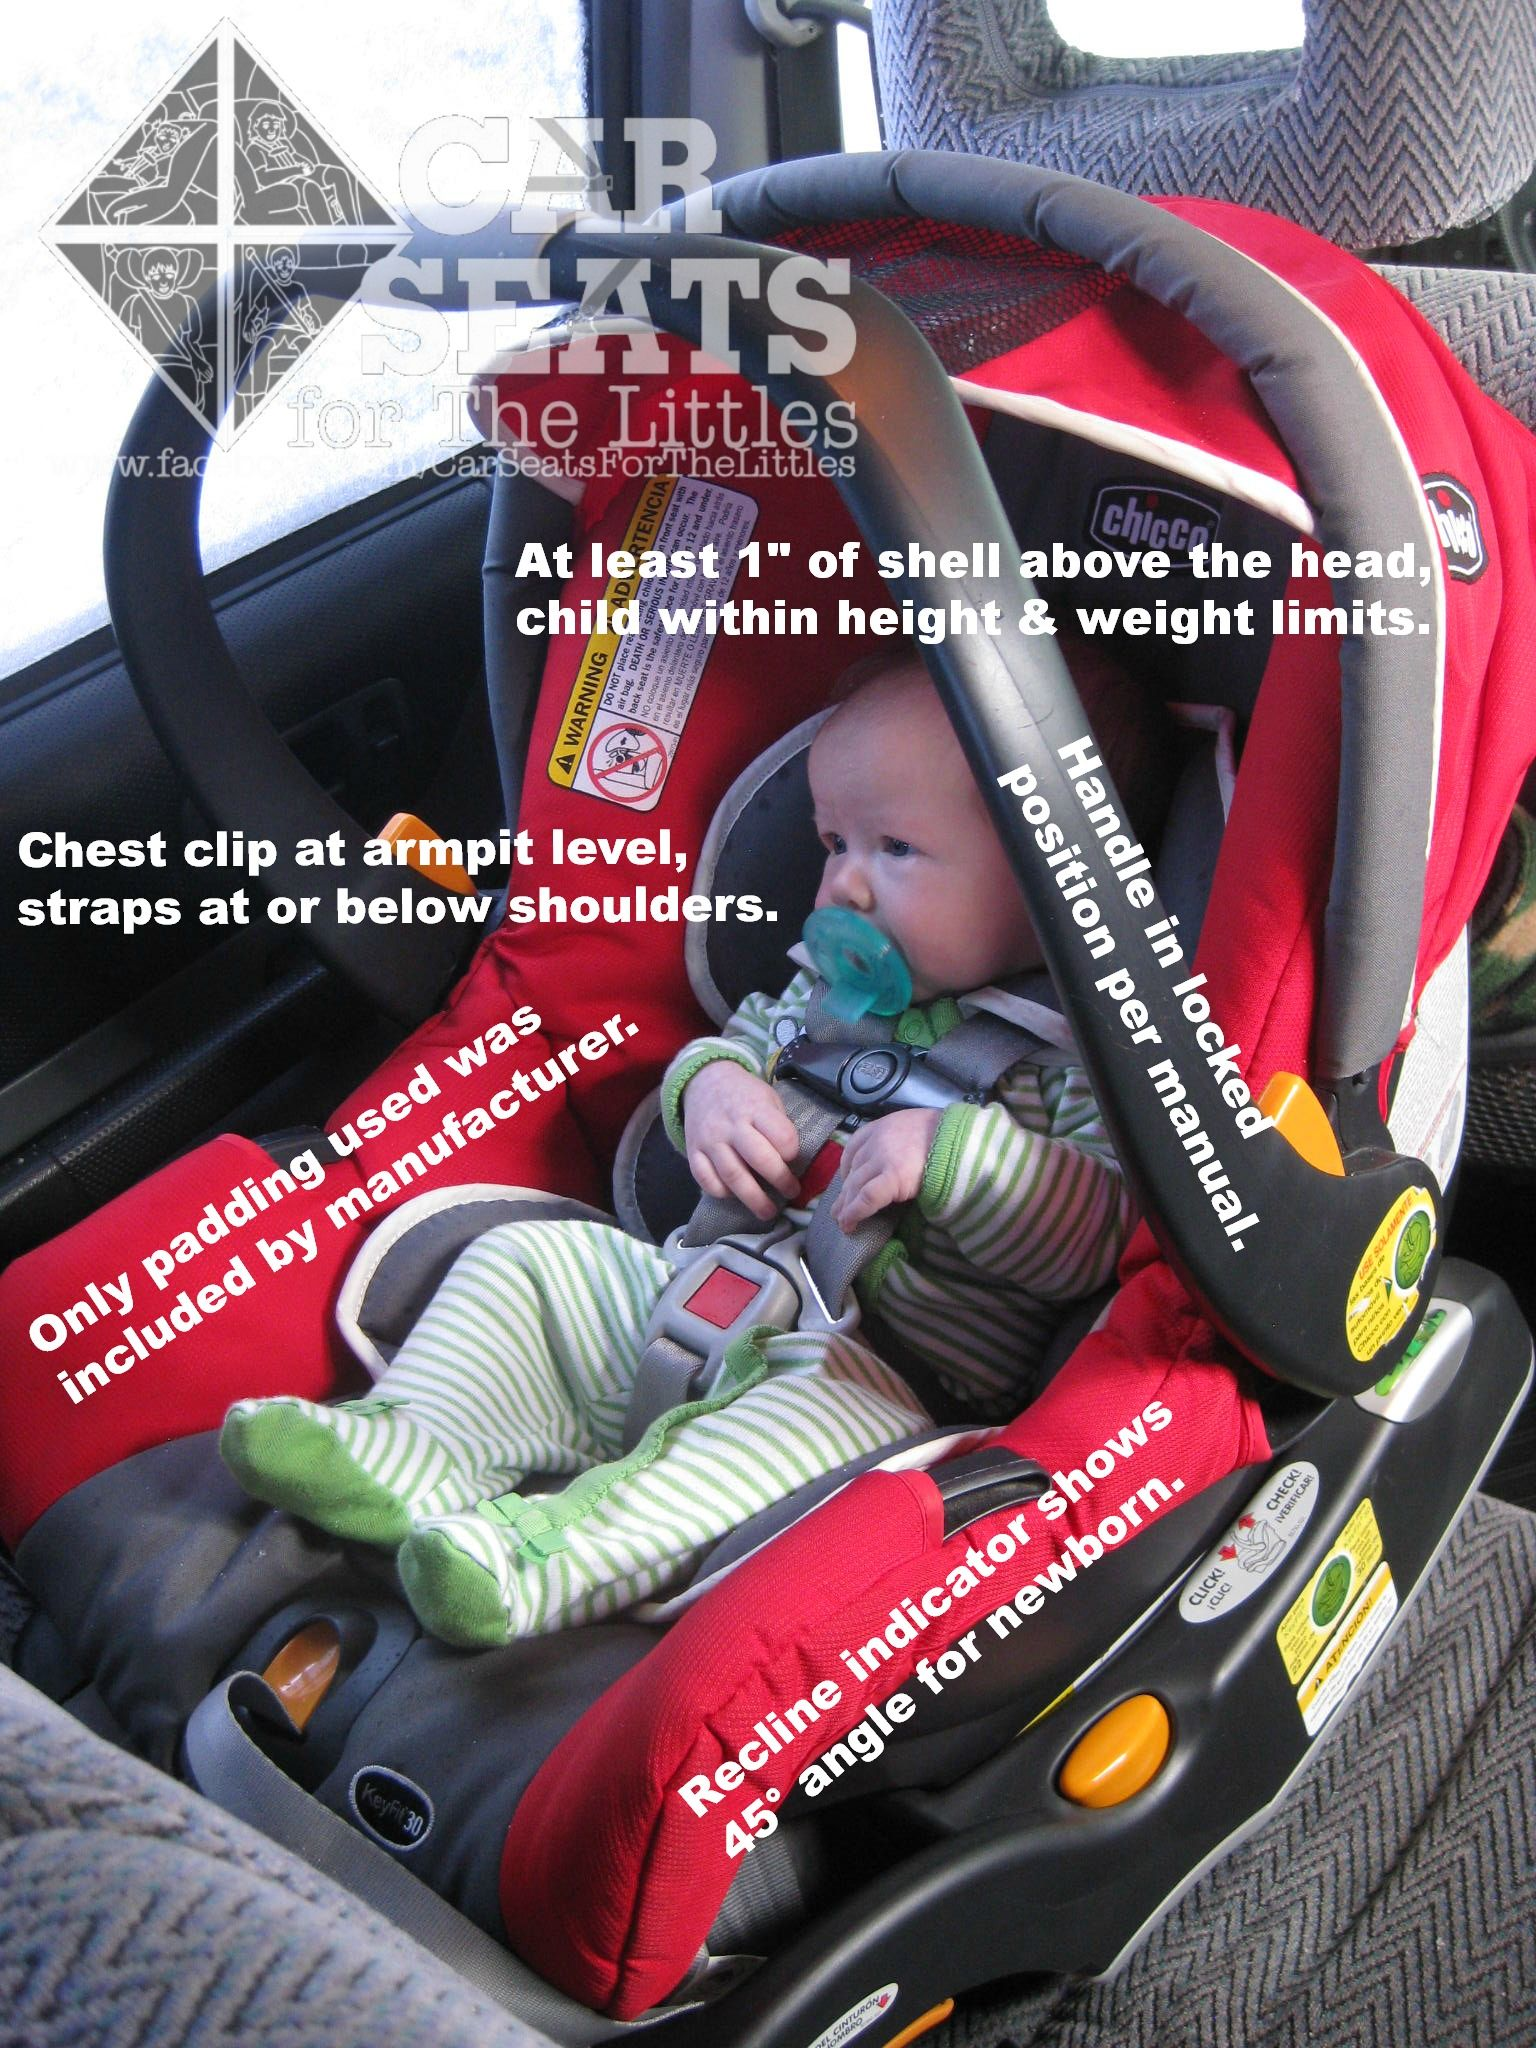 355e3f342c20 Rear facing infant car seat safety! www.csftl.org